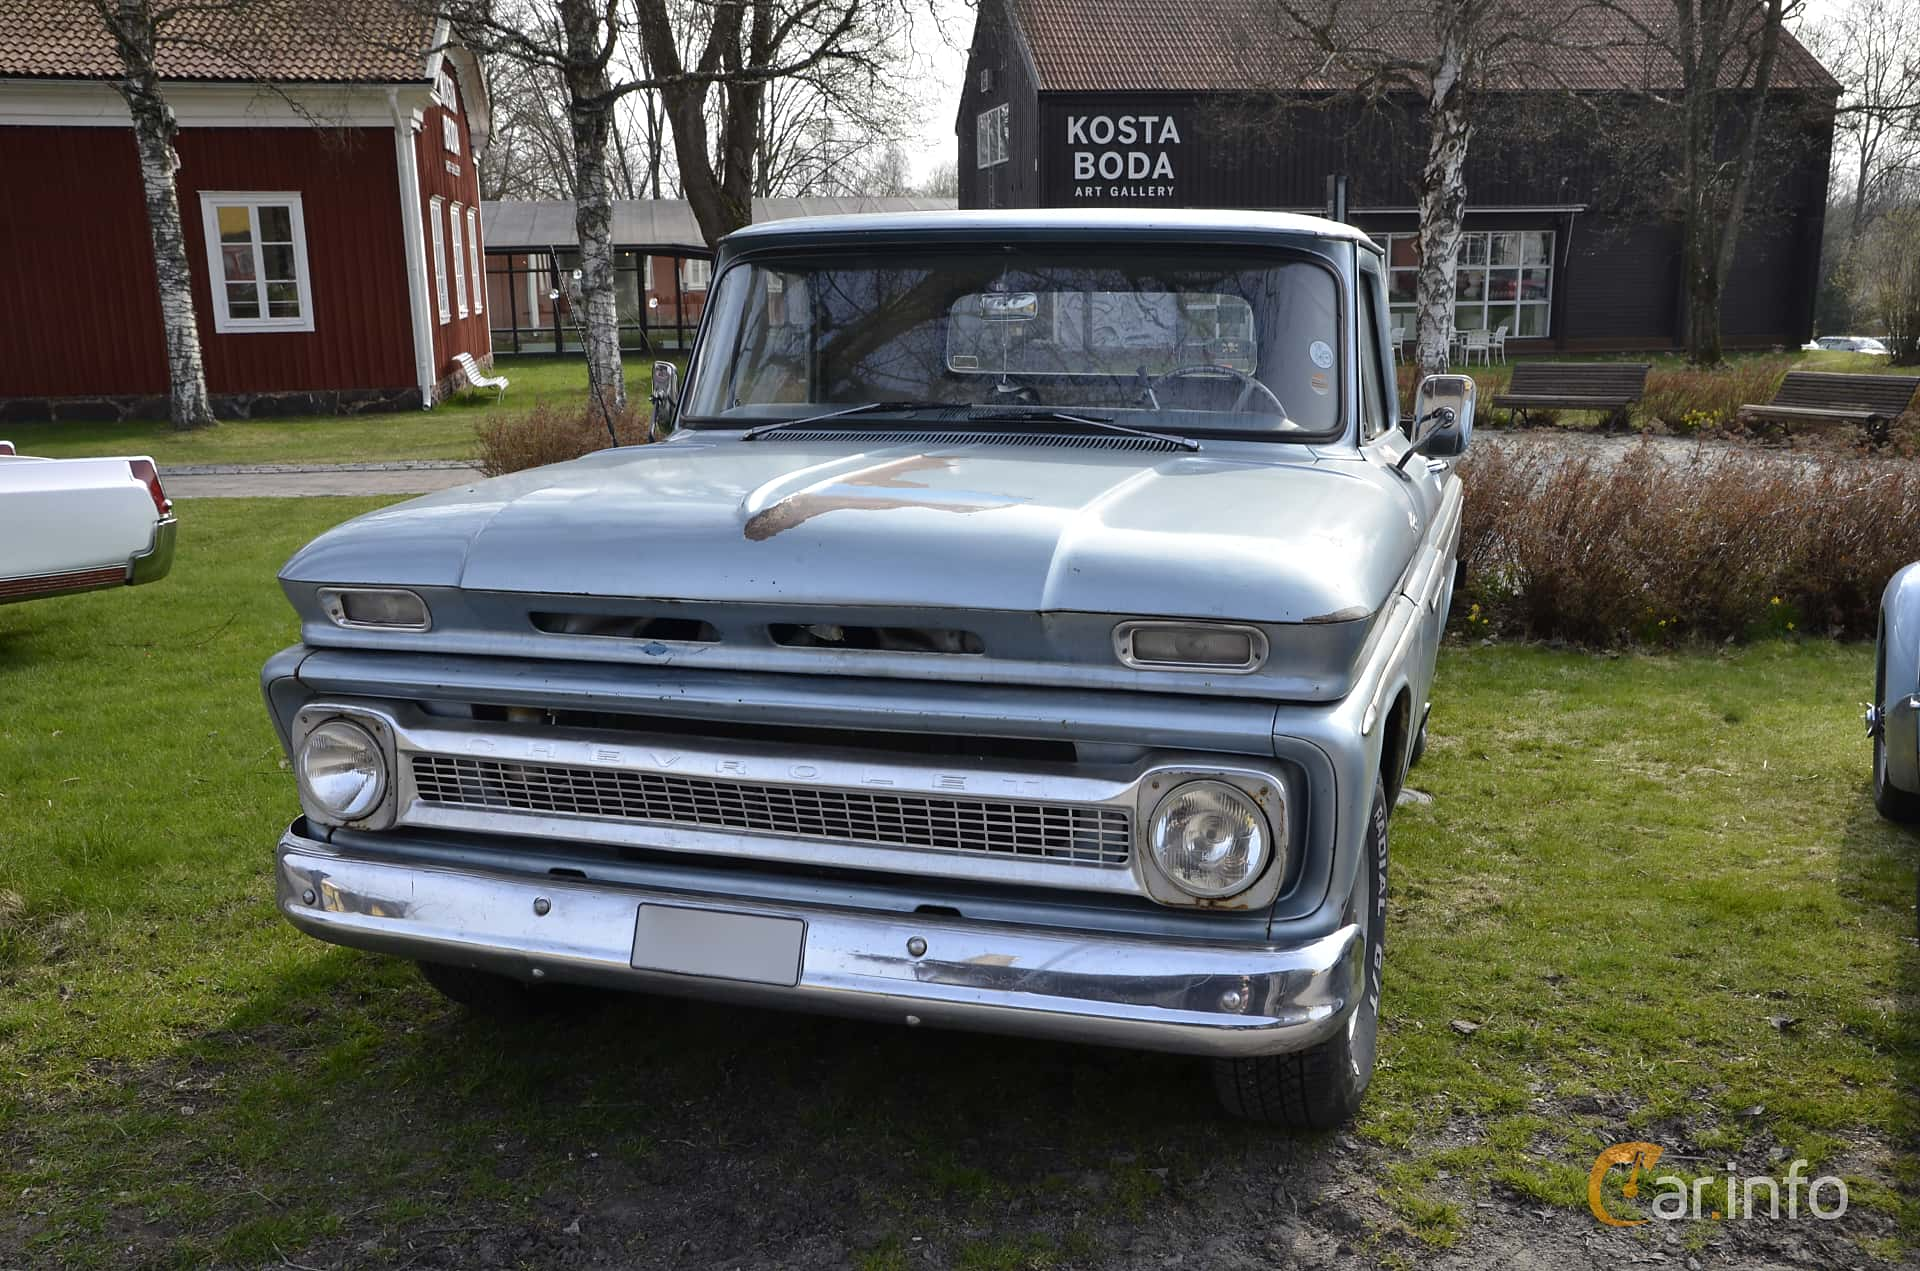 4 Images Of Chevrolet C10 Pickup 48 Powerglide 167hp 1966 By Johanb Pick Up Front 167ps At Kosta Classic 2015